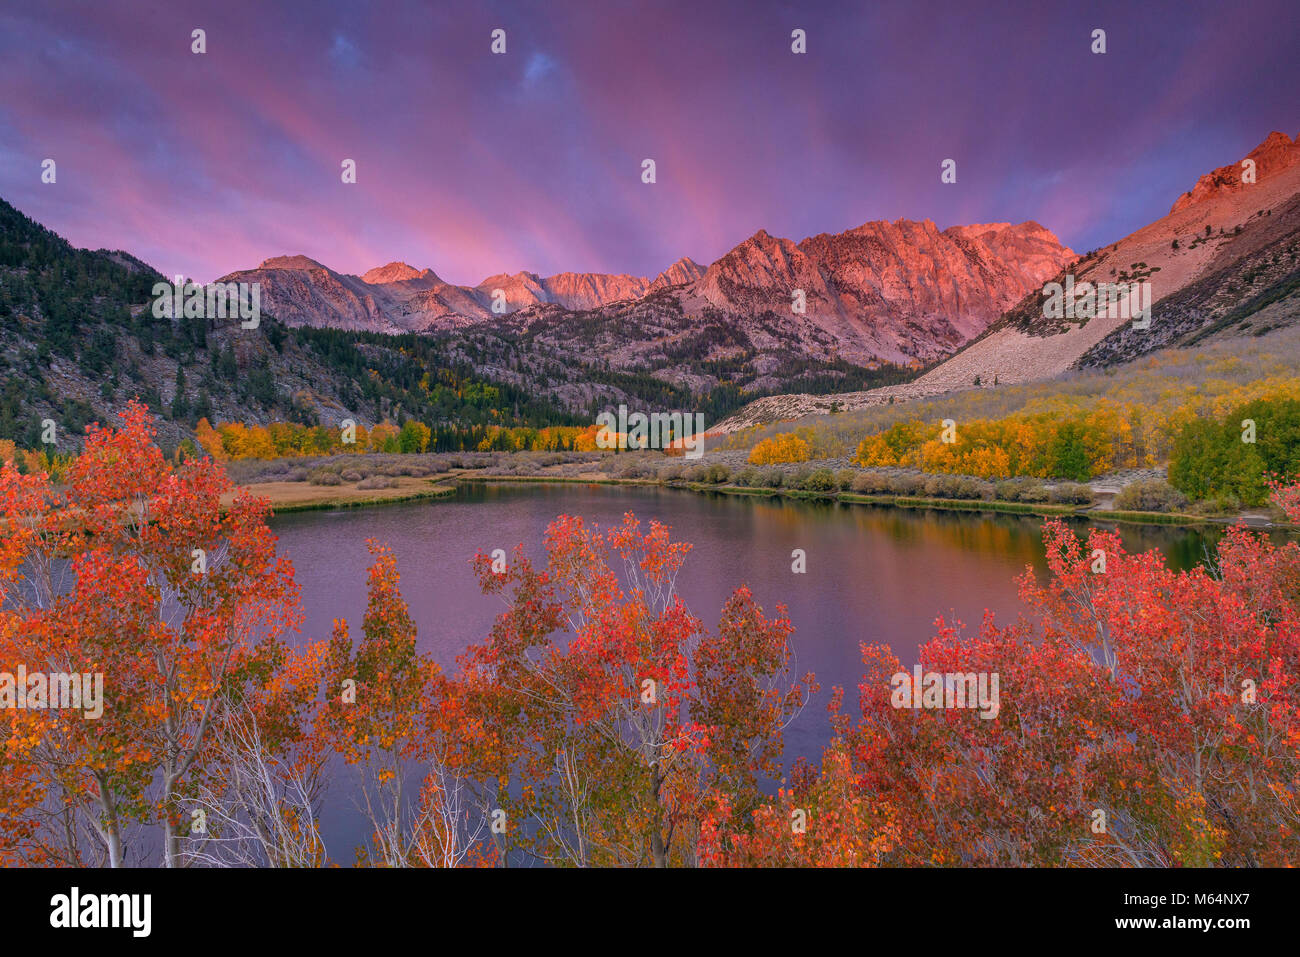 Dawn, Aspen, Populus Tremulae, Piute Crags, North Lake, Bischof Creek National Recreation Area, Inyo National Forest, Stockbild